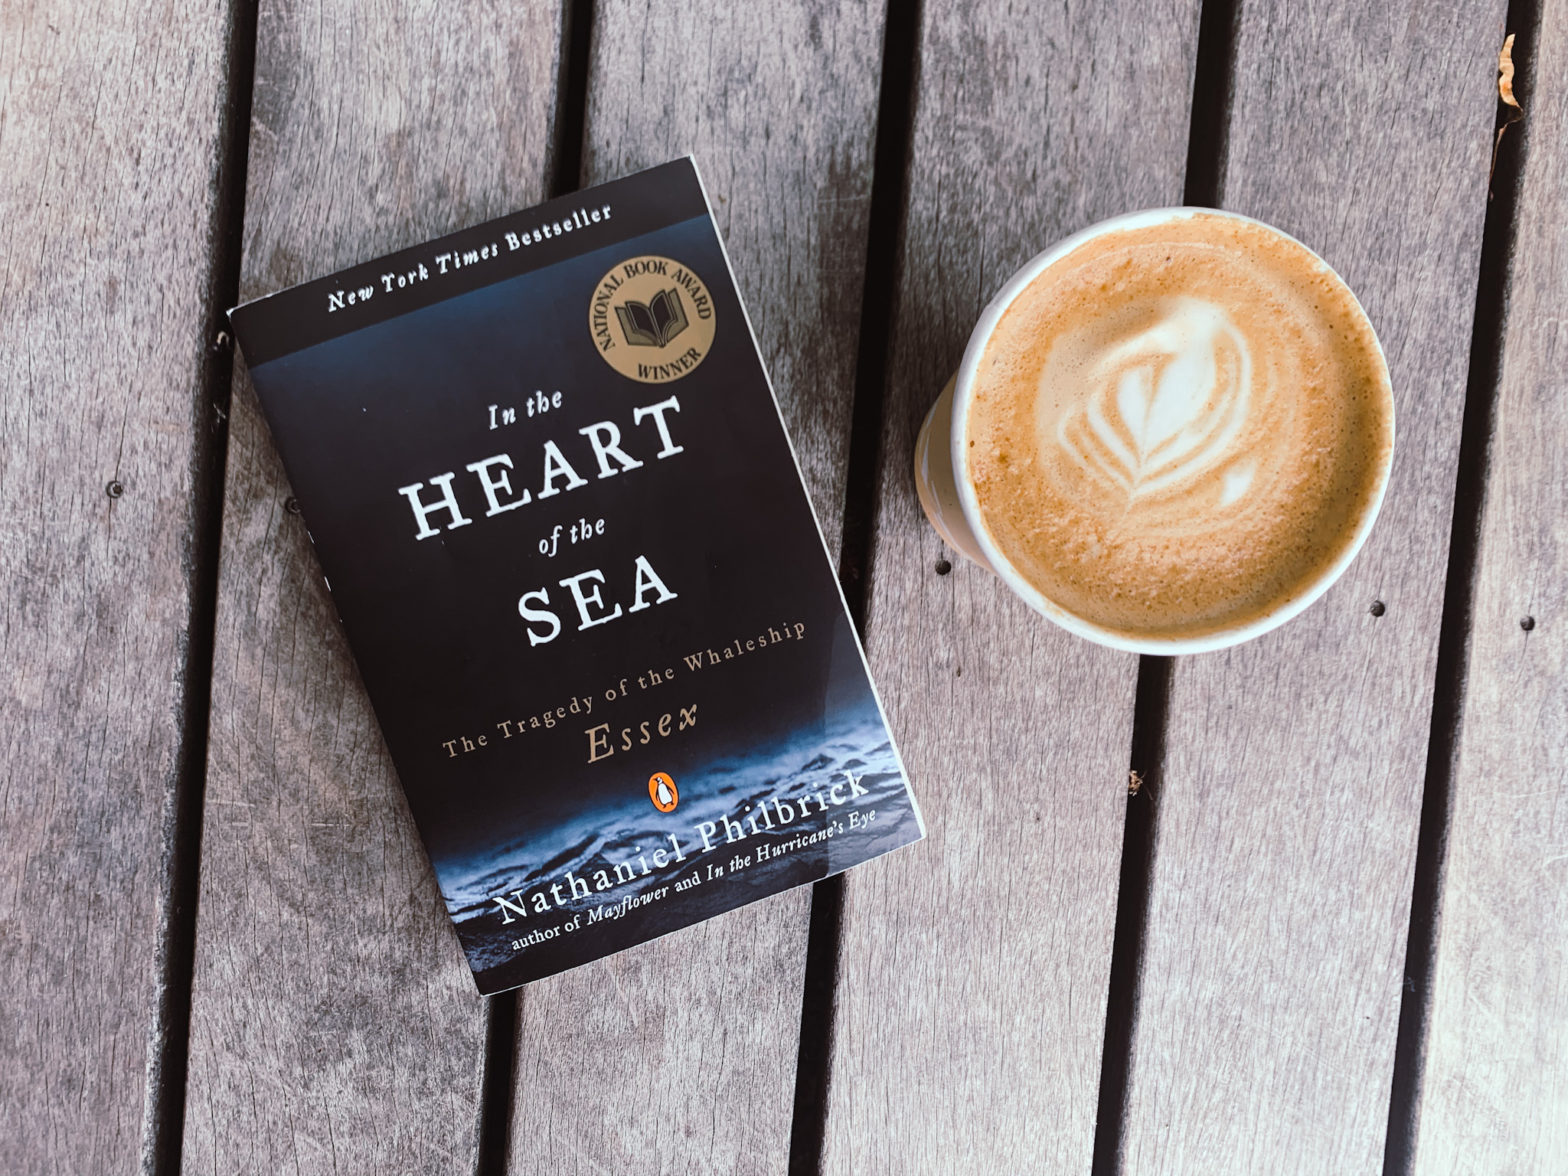 Heart of the Sea Book on table